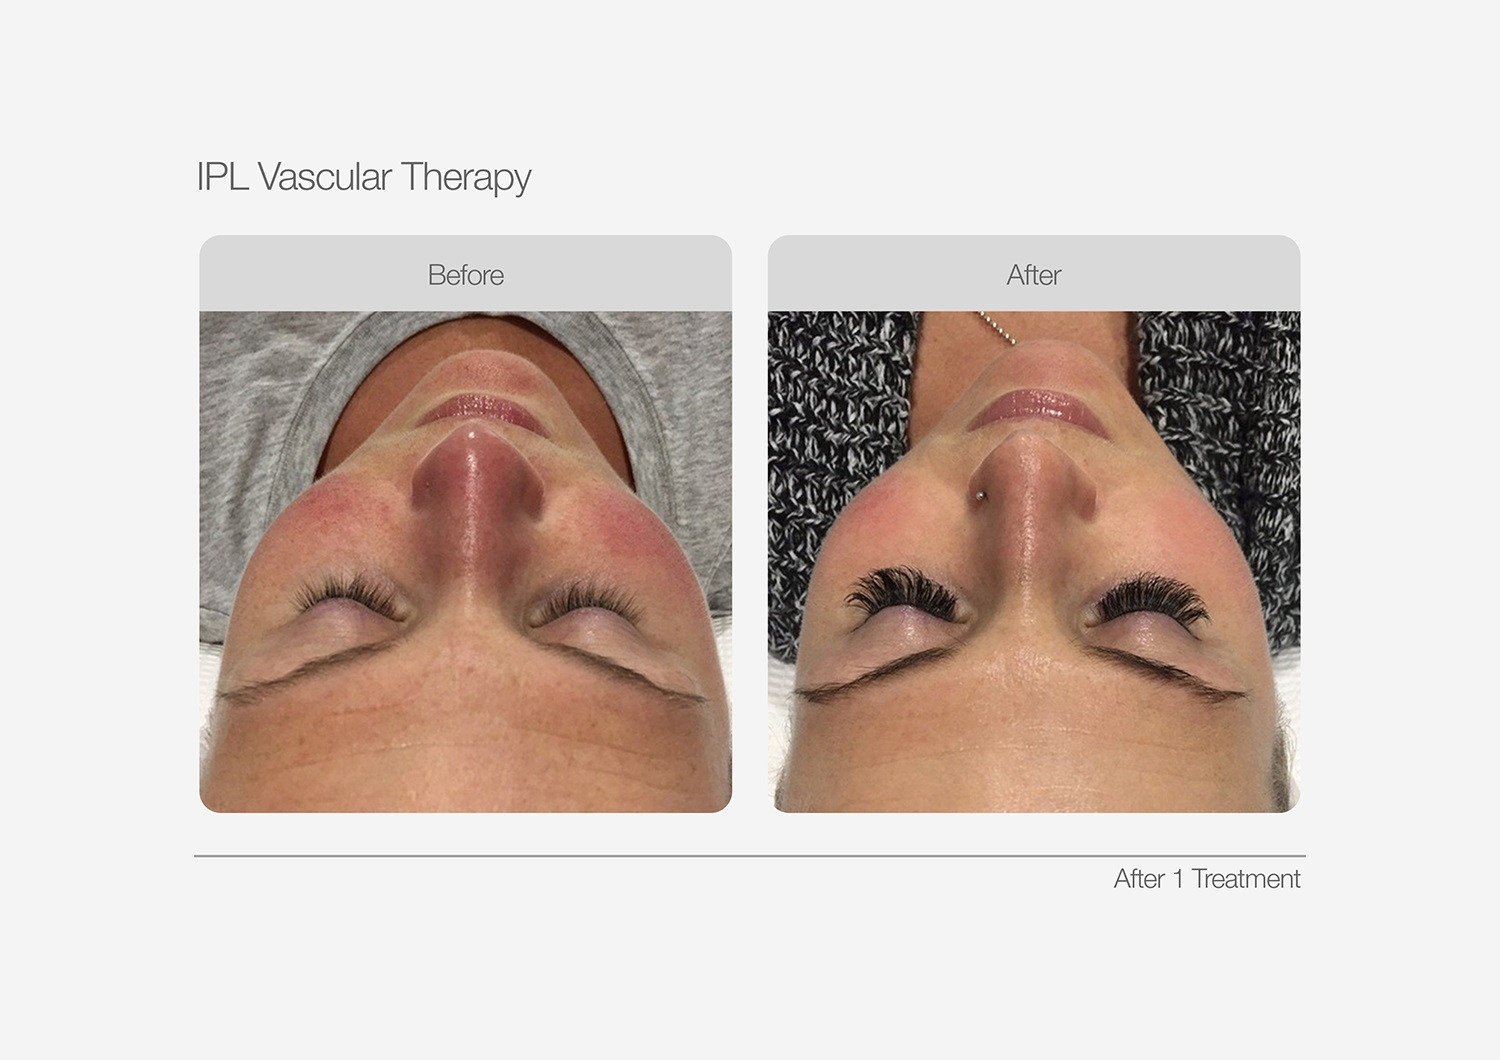 IPL-Vascular-Therapy-Before-After-03